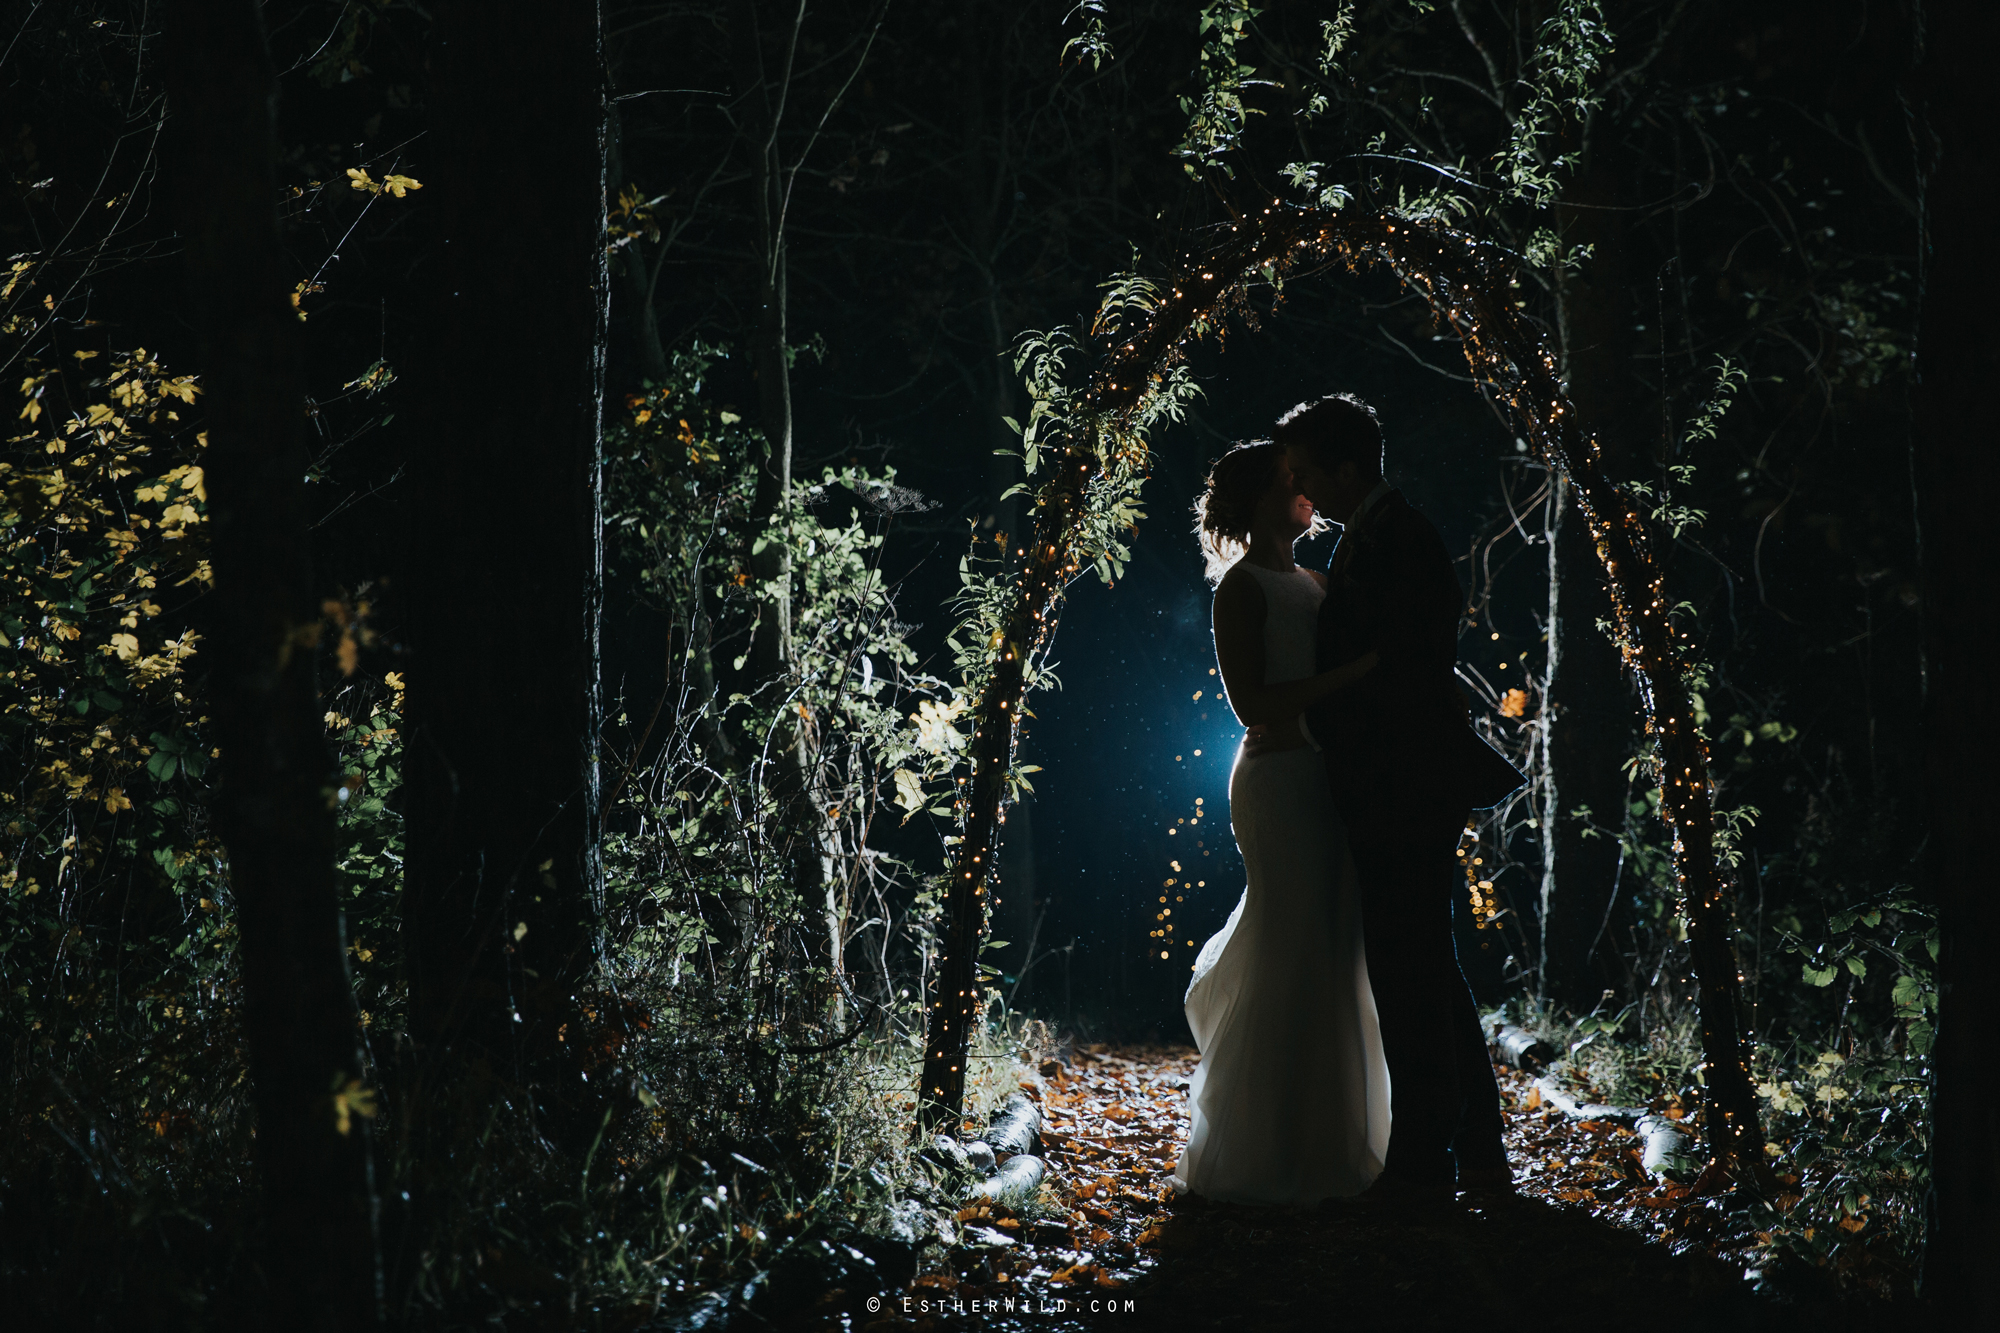 Wedding_Photographer_Chaucer_Barn_Holt_Norfolk_Country_Rustic_Venue_Copyright_Esther_Wild_IMG_2533.jpg